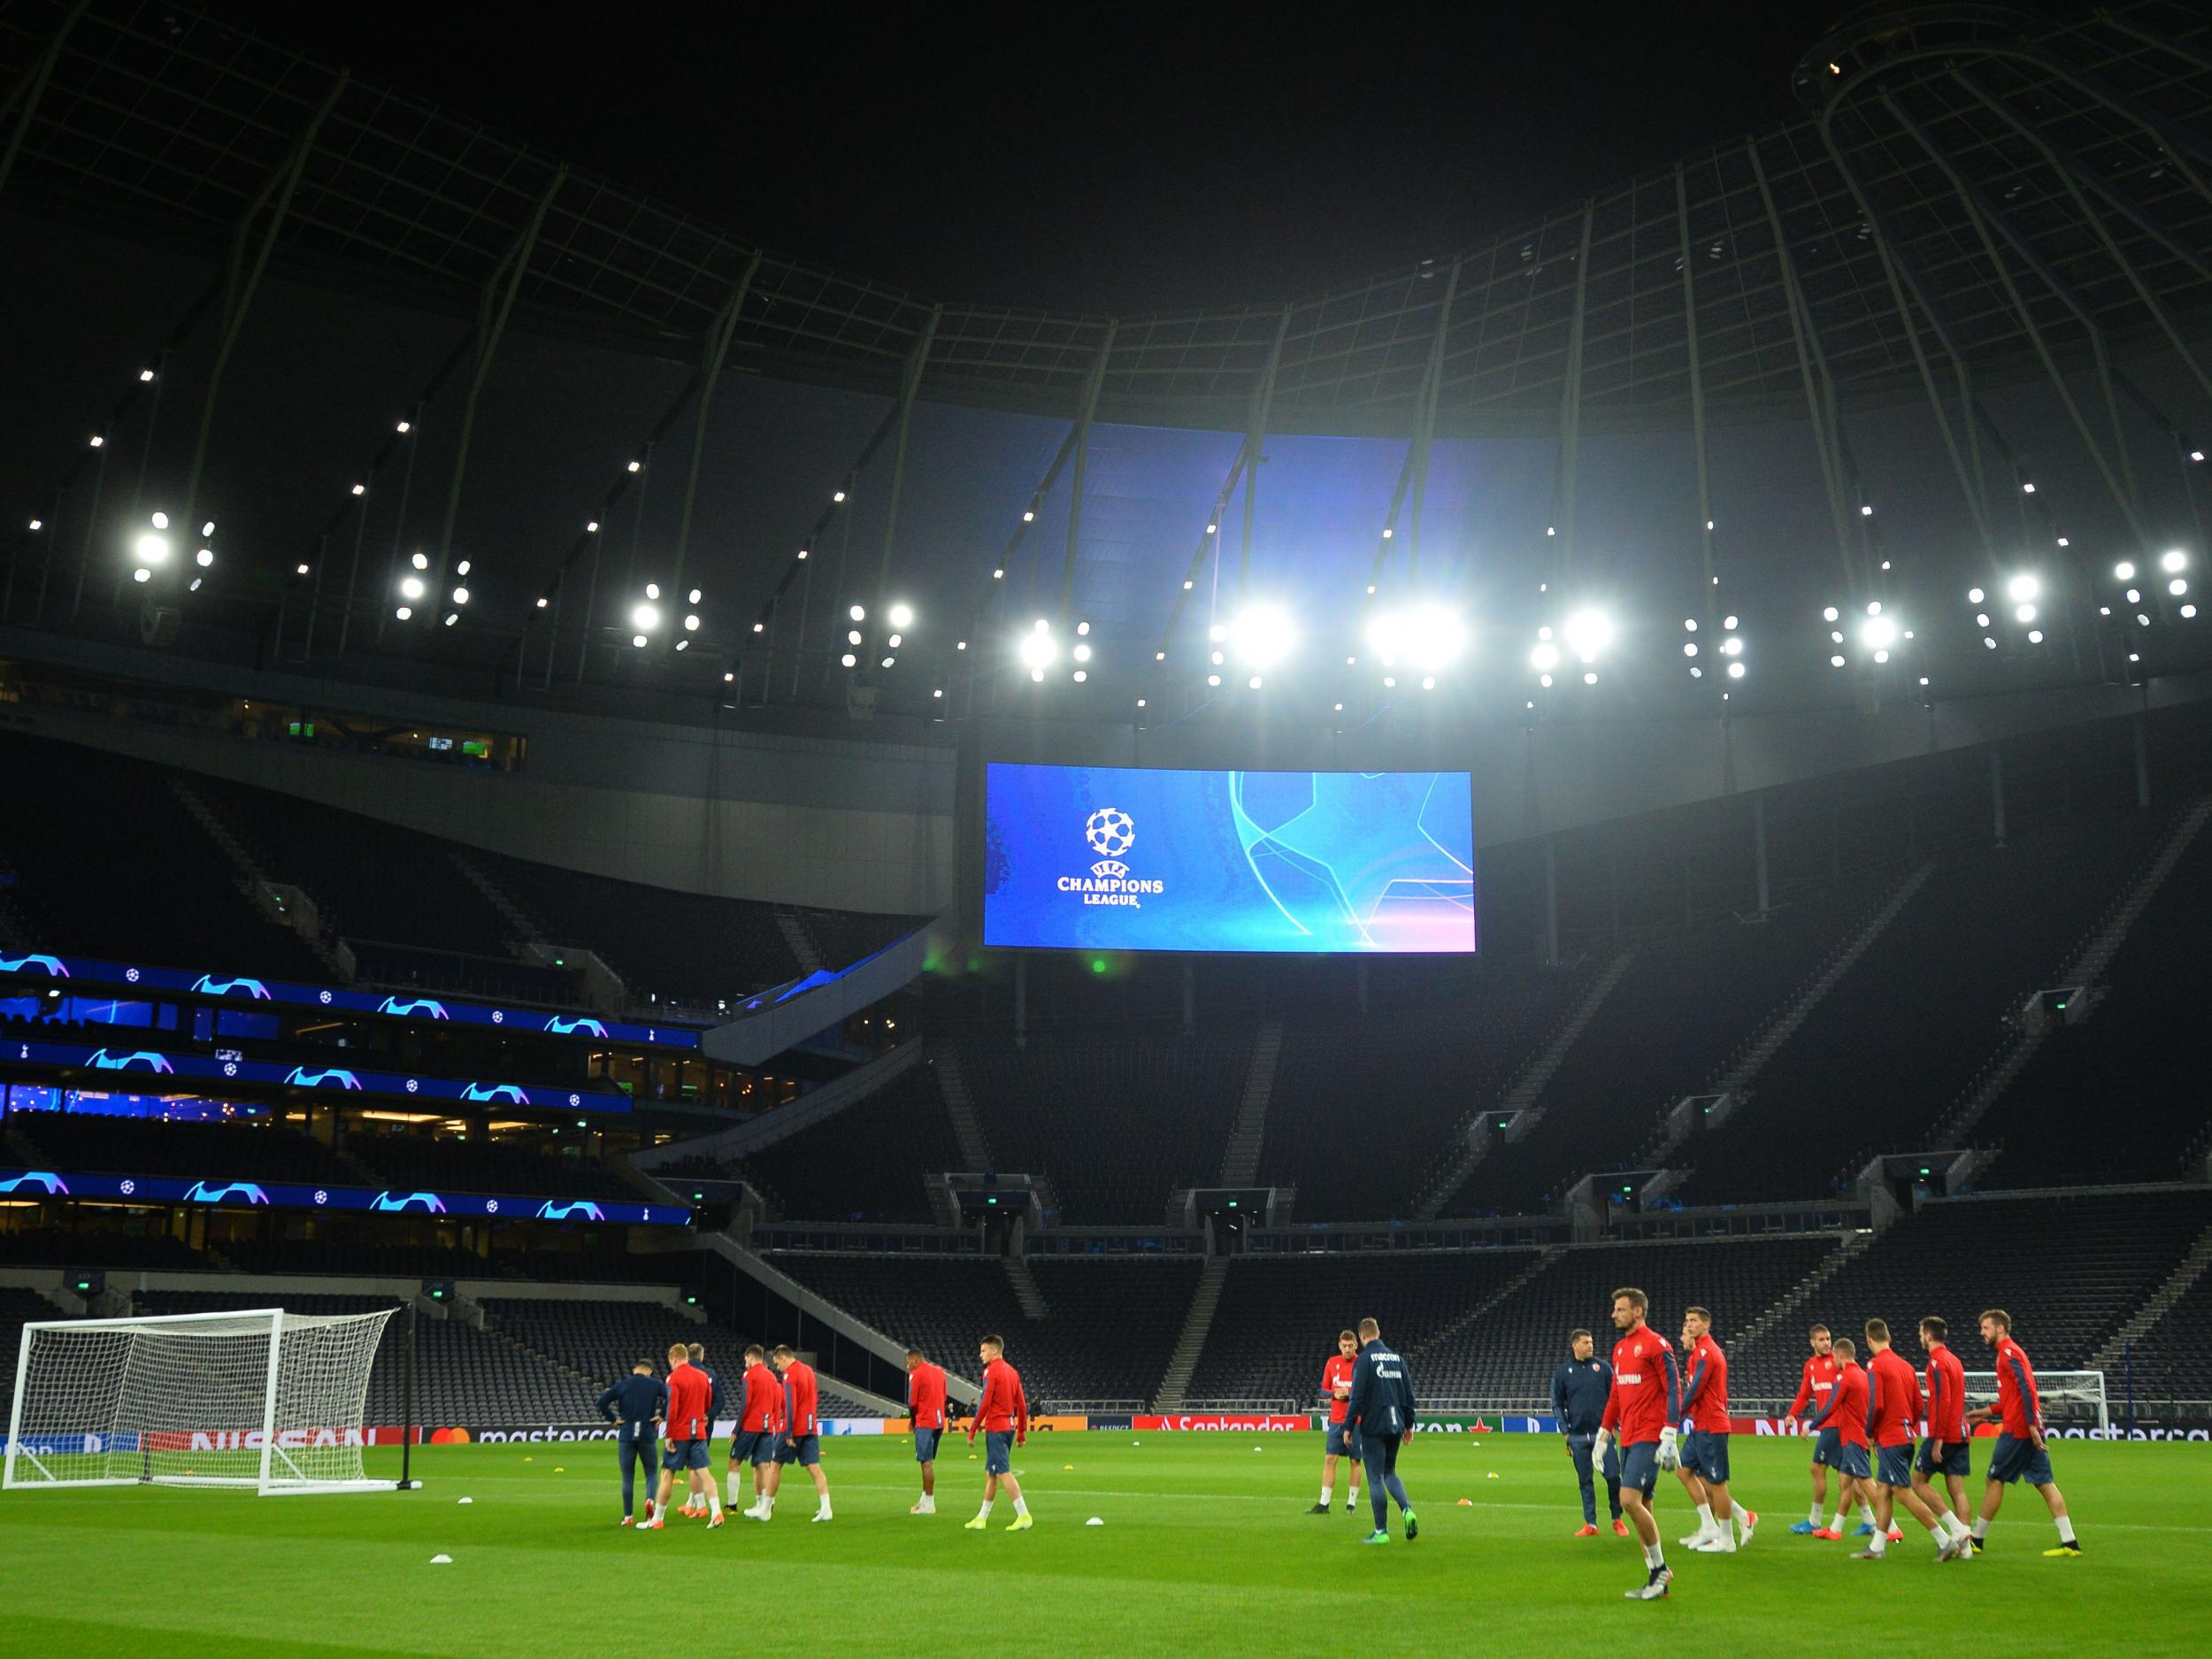 Tottenham vs Red Star Belgrade: Why are there so many empty seats for Champions League group stage game?